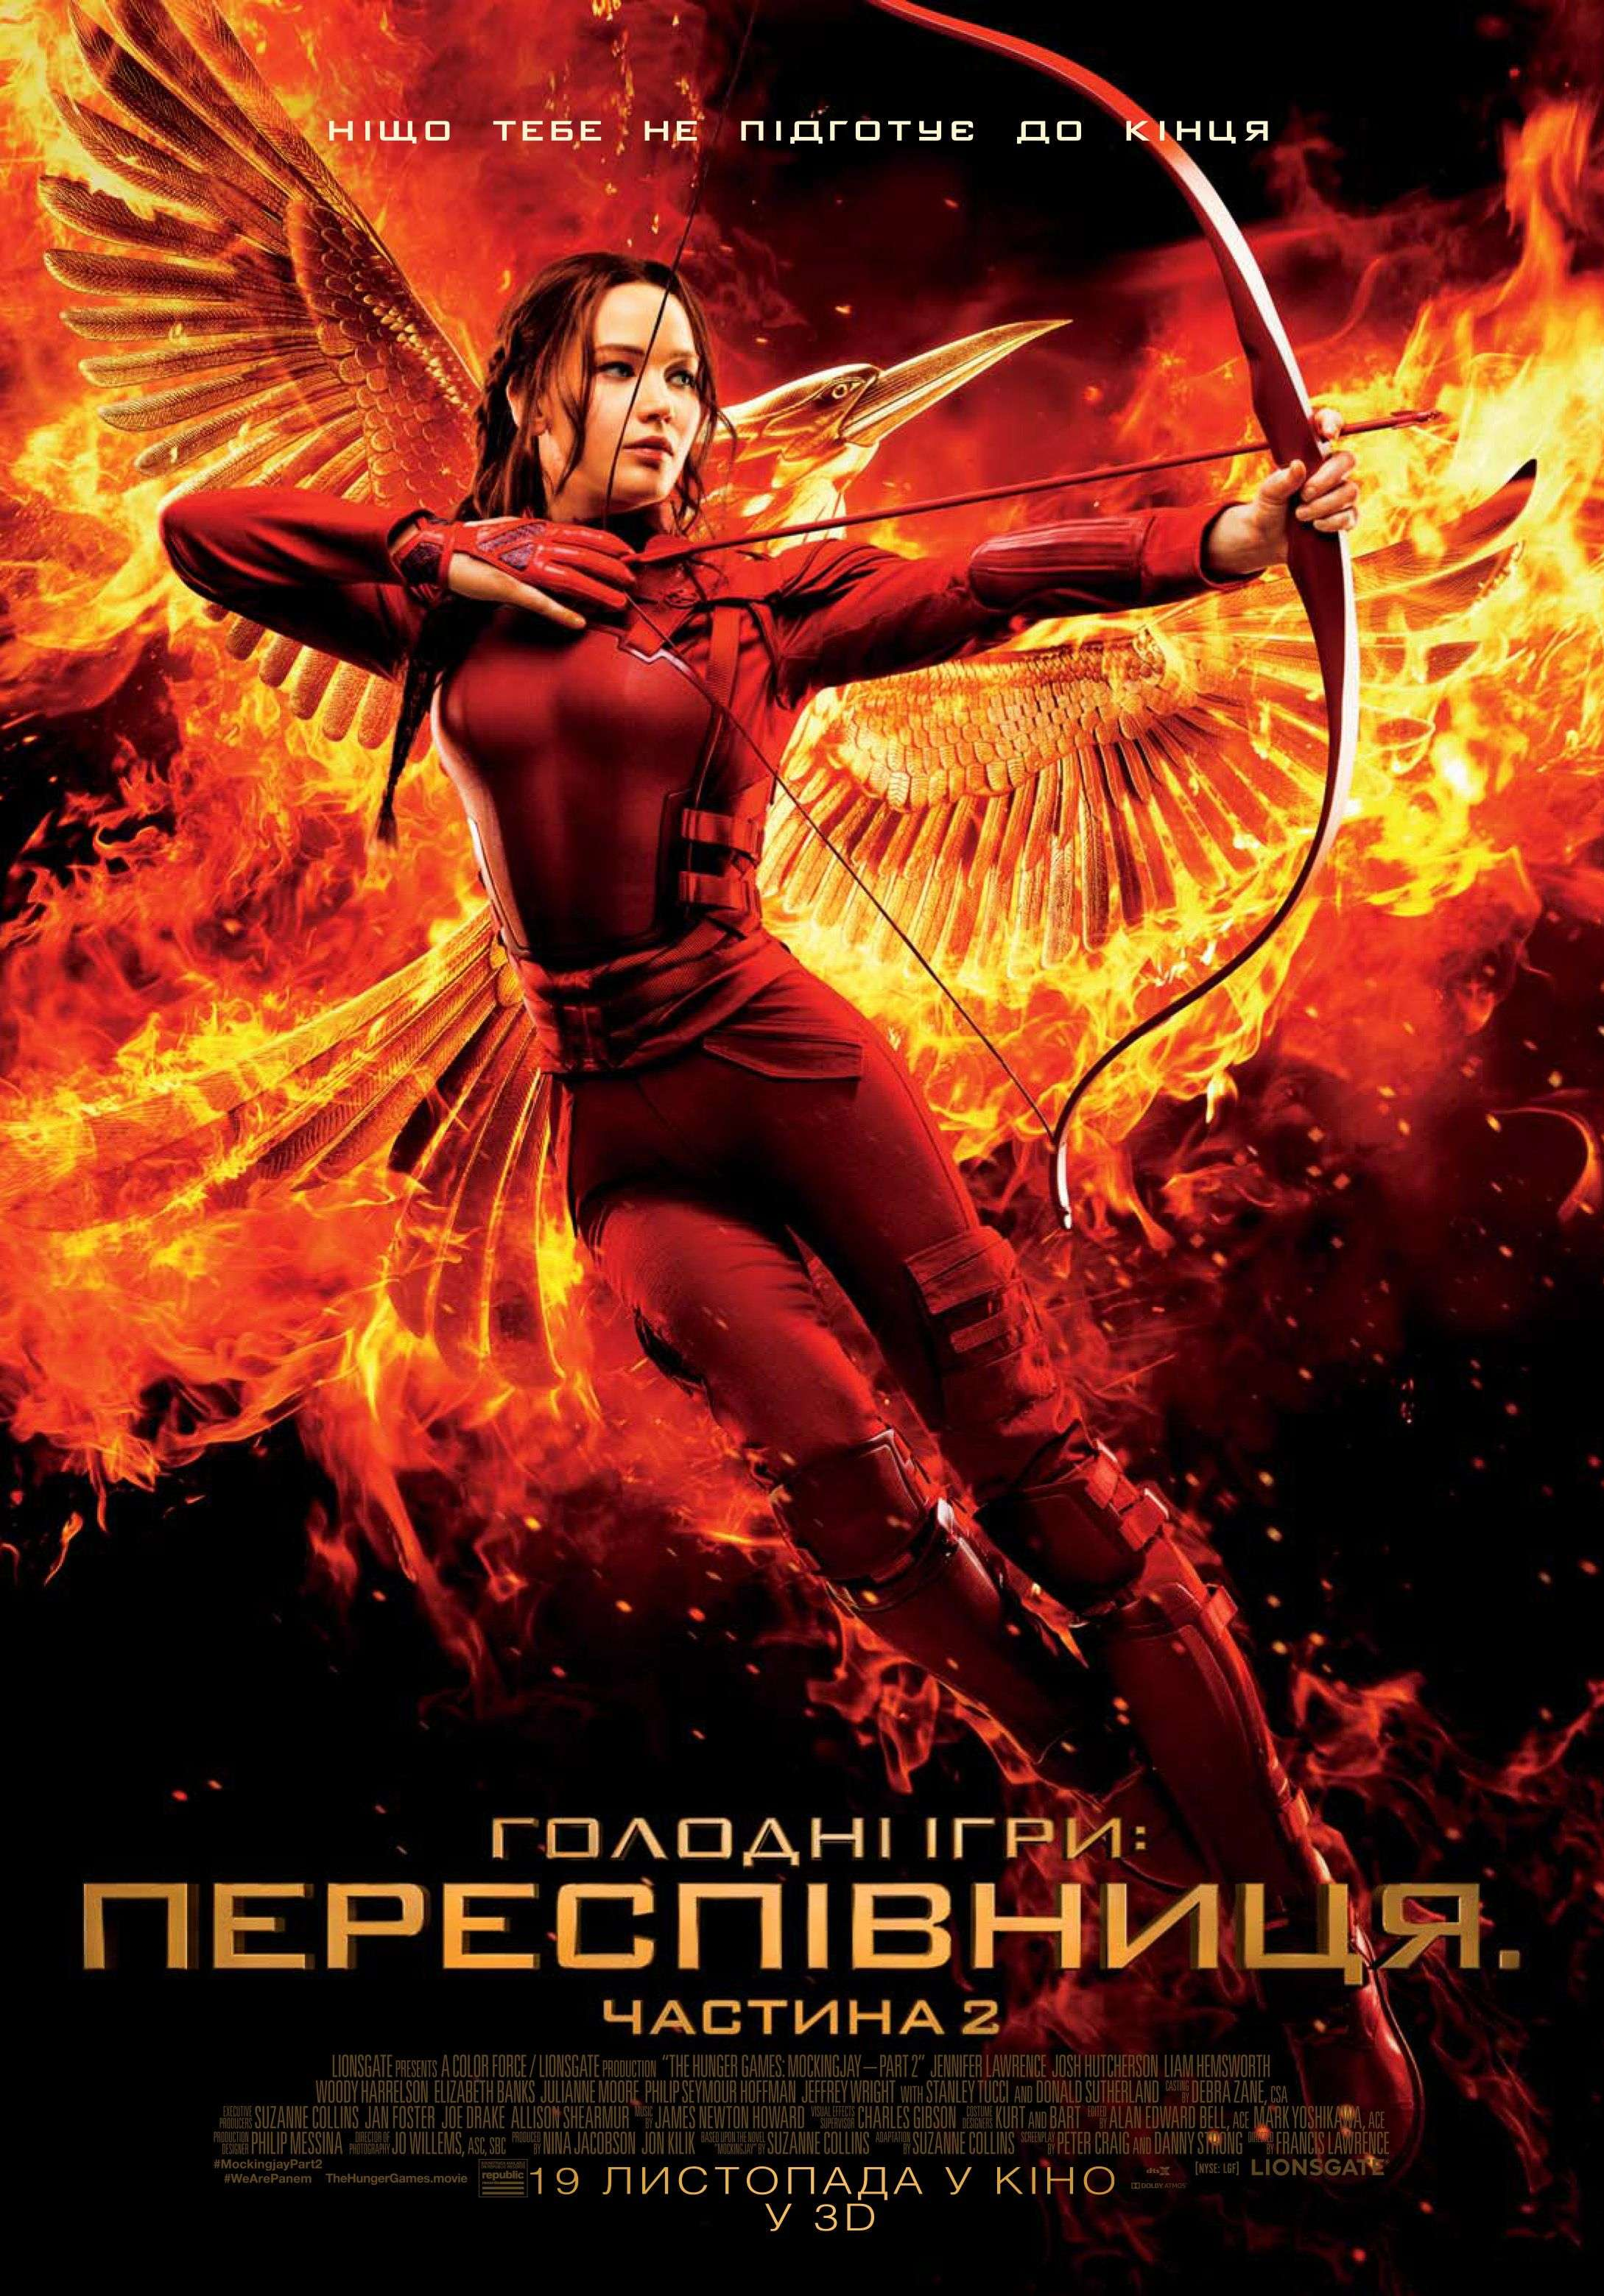 Hunger games_Payoff 70x101_Coraline 70x101.qxd.qxd